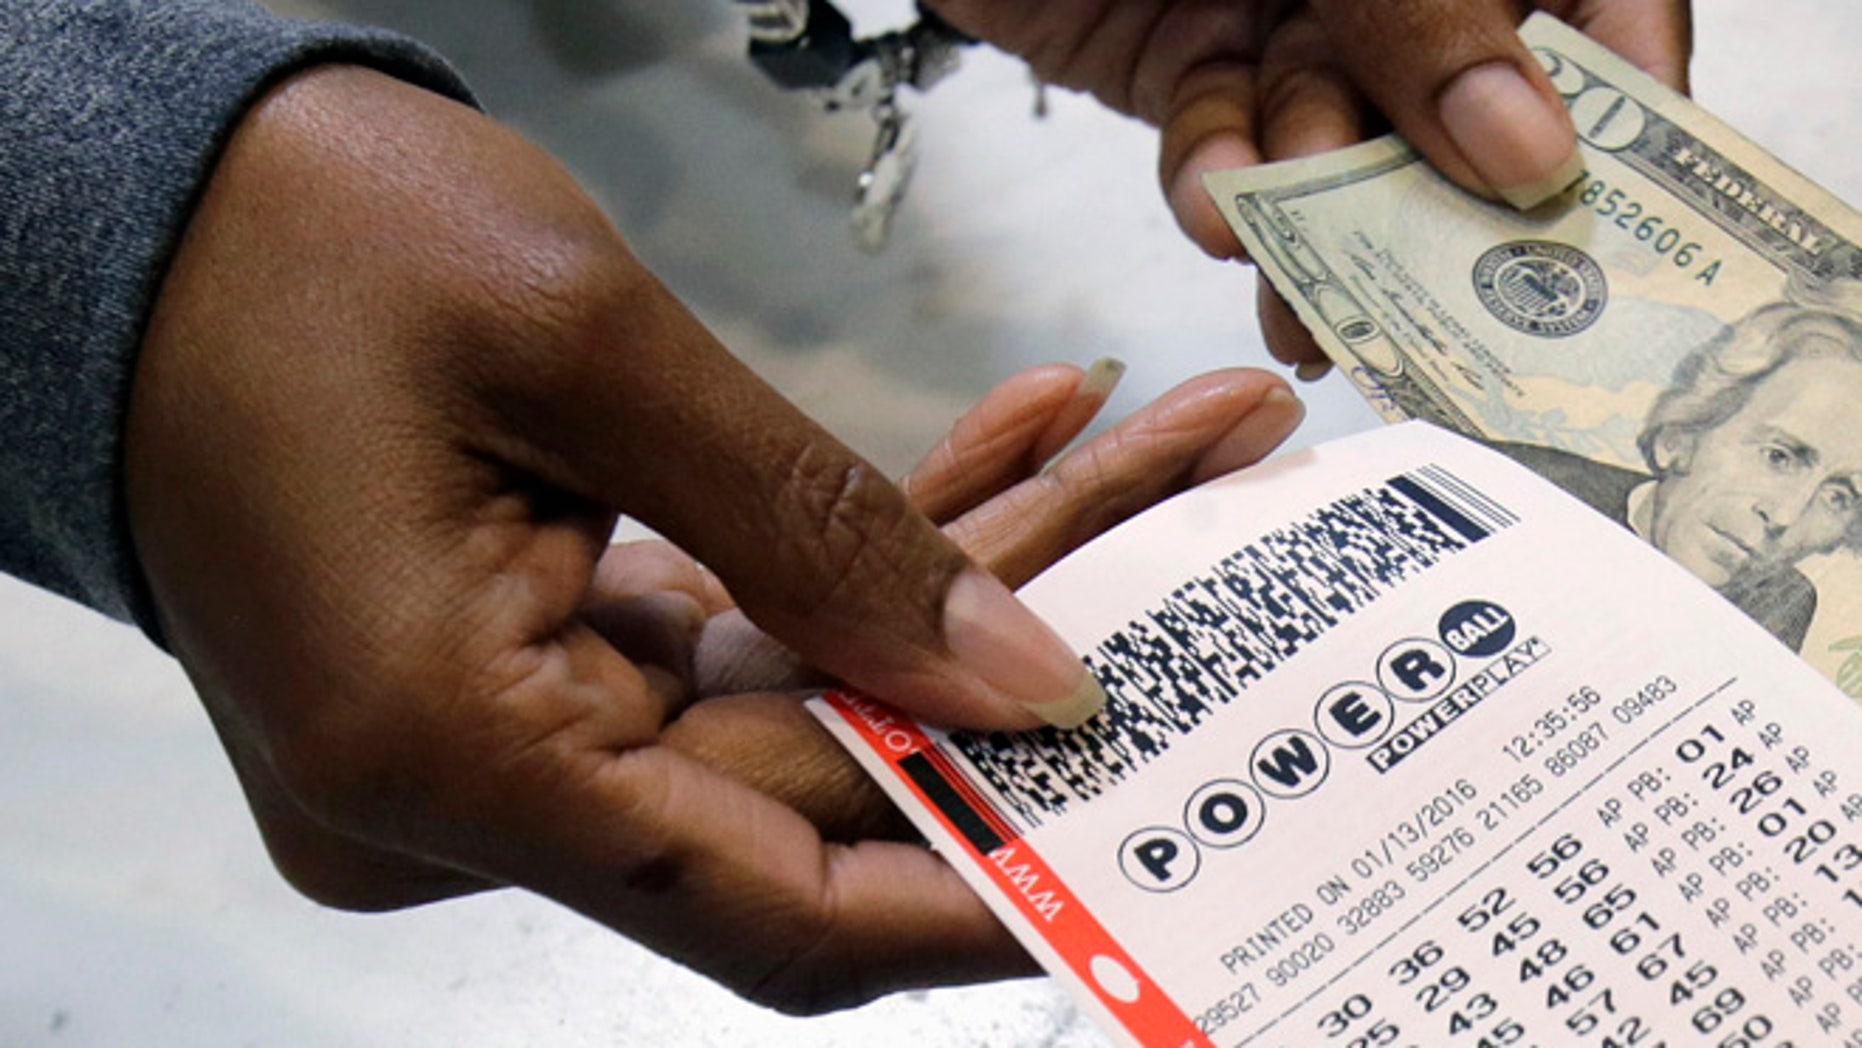 In this Jan. 13, 2016 file photo, a clerk hands over a Powerball ticket for cash at Tower City Lottery Stop in Cleveland. Powerball estimates that its jackpot for the May 4, 2016